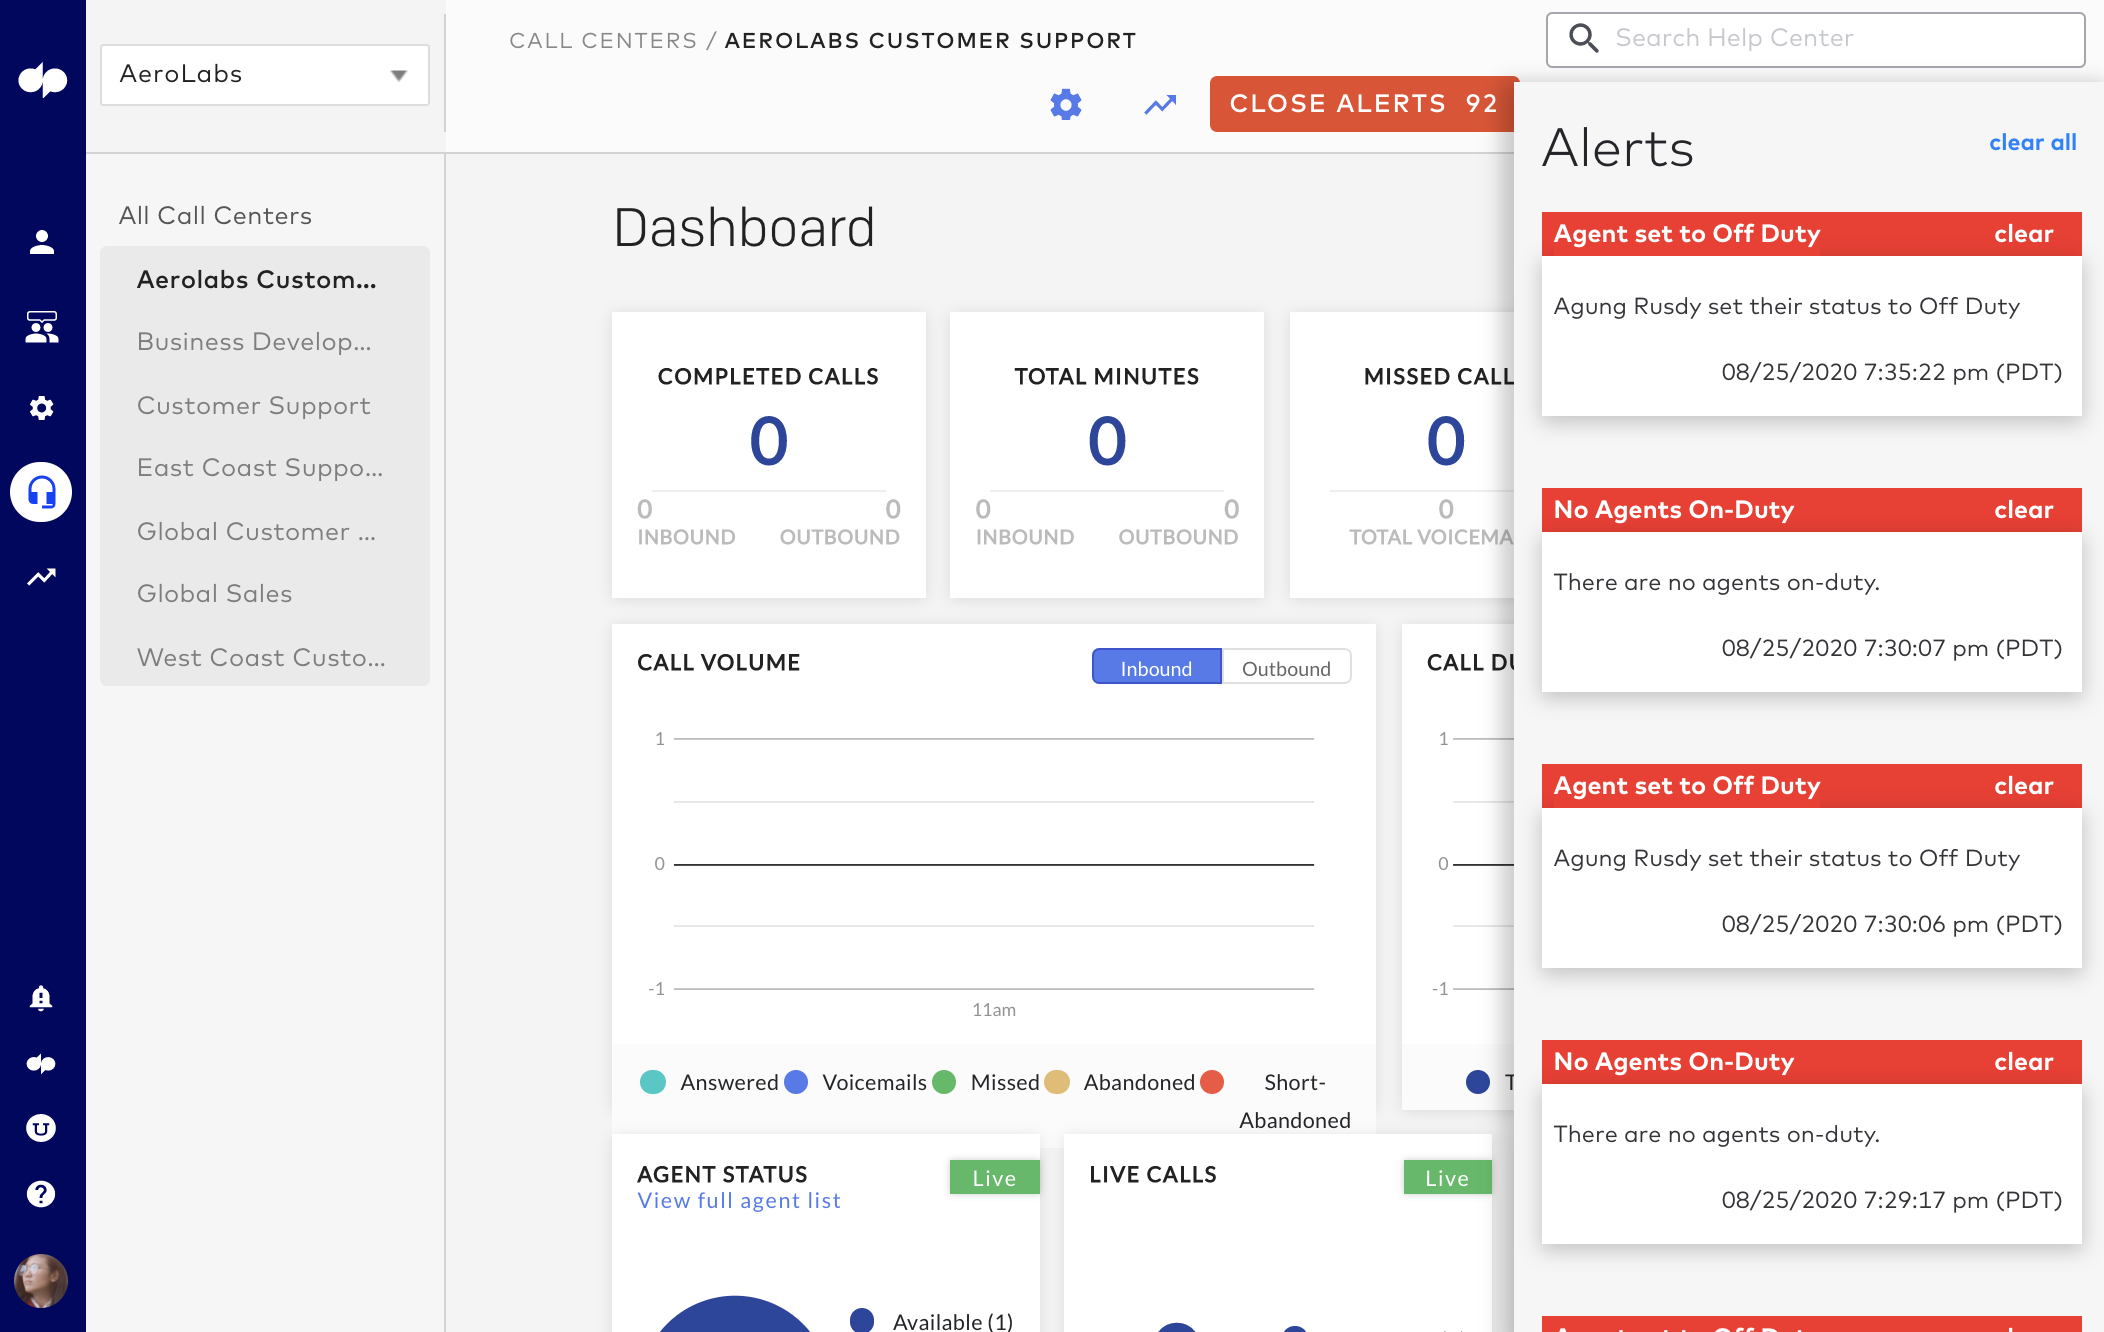 cc-alerts-dashboard.png